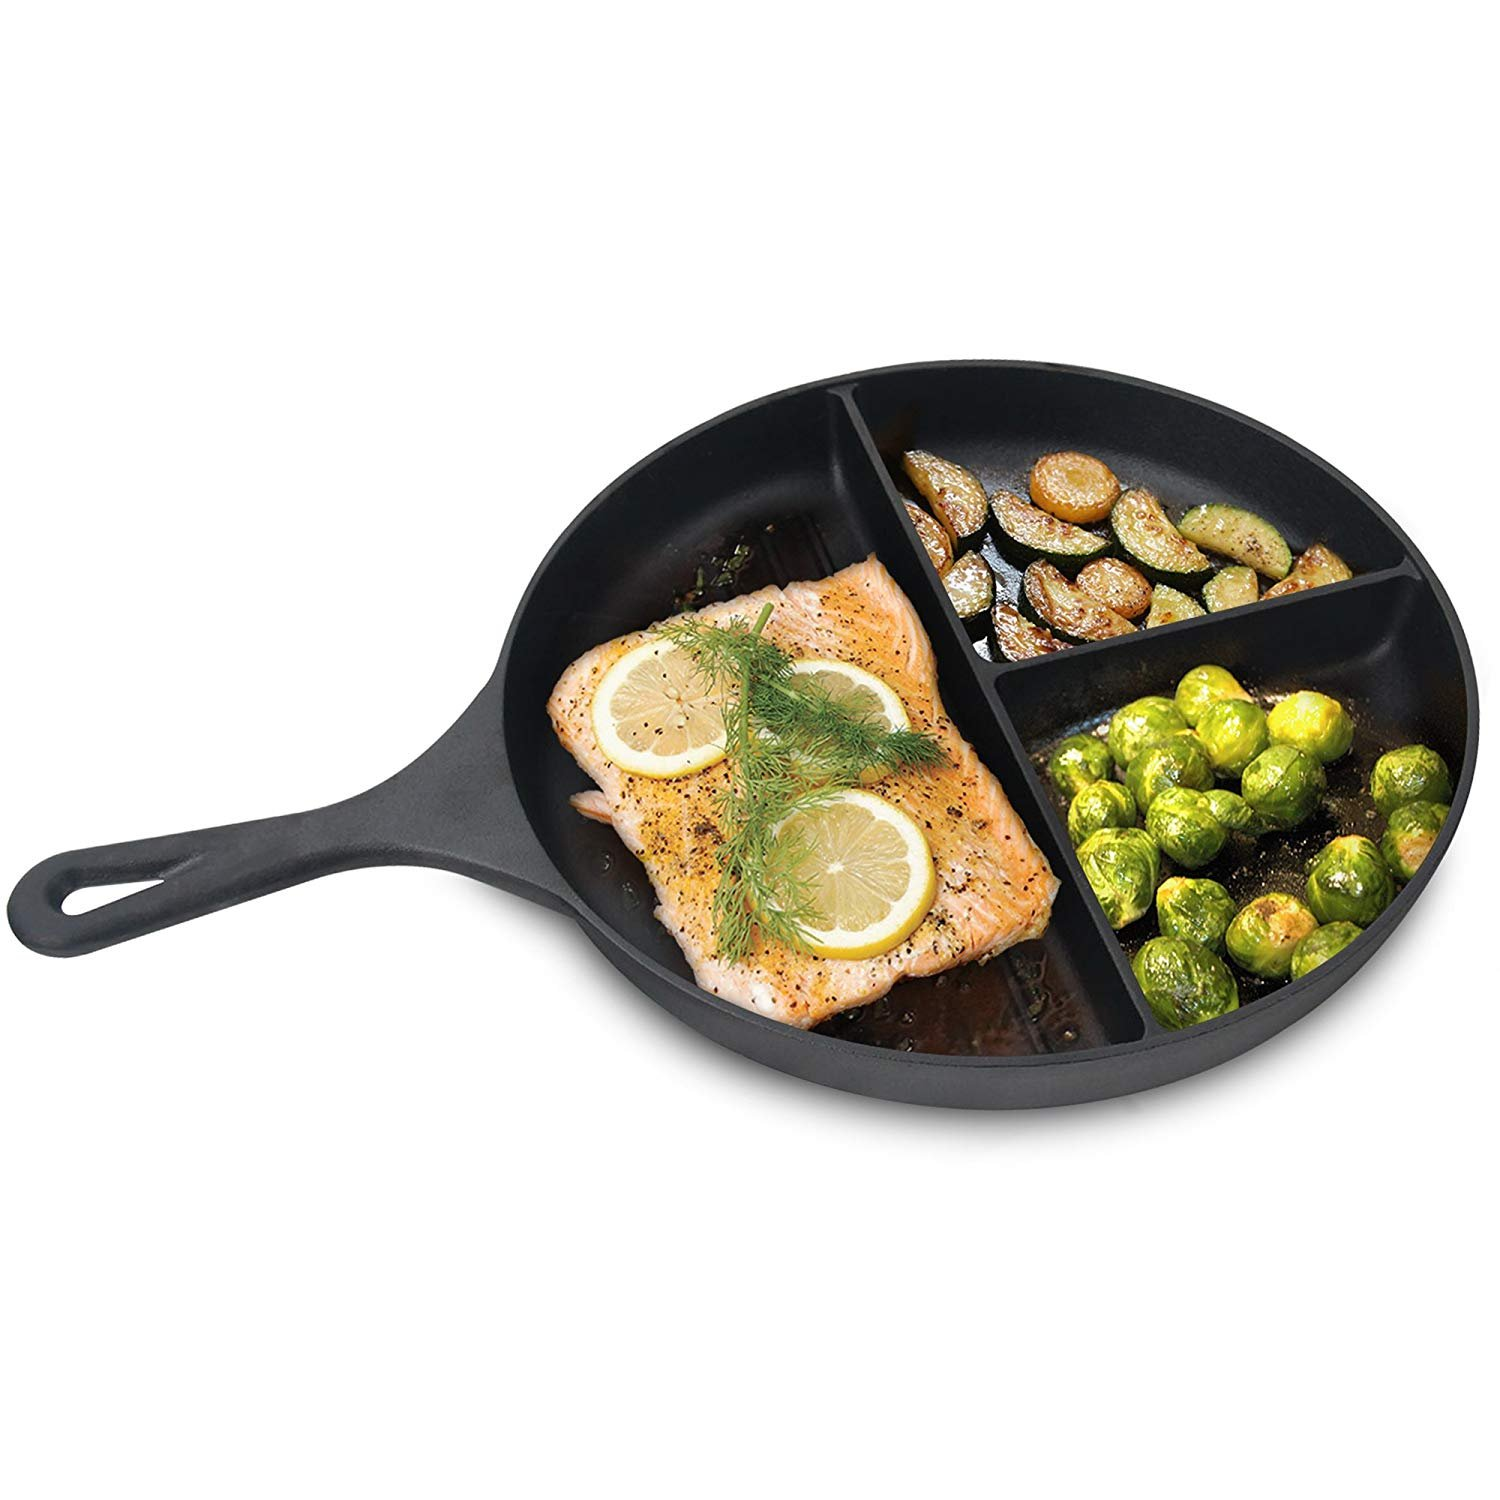 Jim Beam 3 Section Pre-Seasoned Cast Iron Skillet Pan 25cm Inch Divided Pan For Cooking 3 Things At Once   B07FF9QXMD